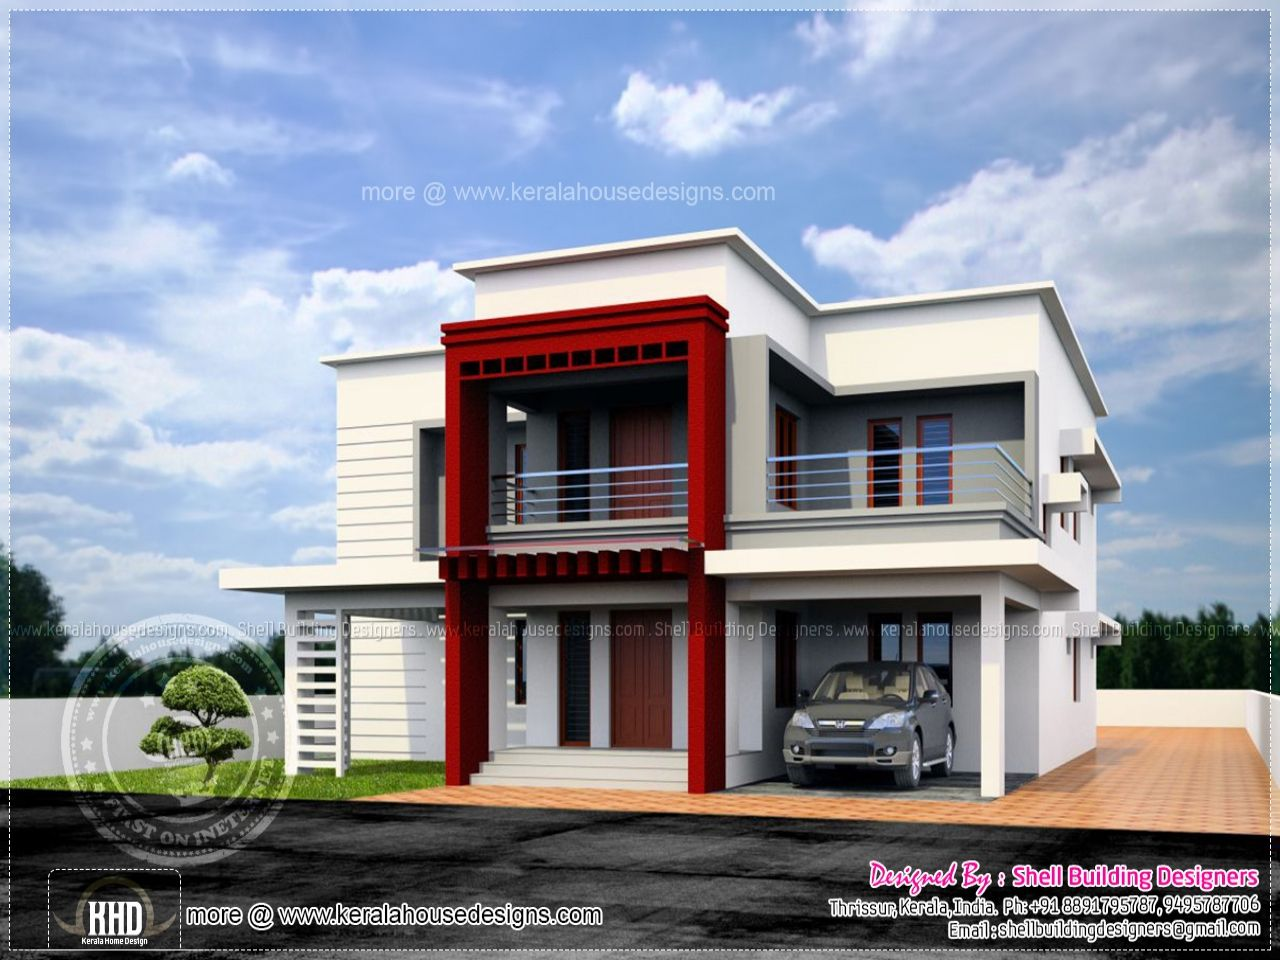 Bungalow Designs In Nigeria Small House Design Plans Small